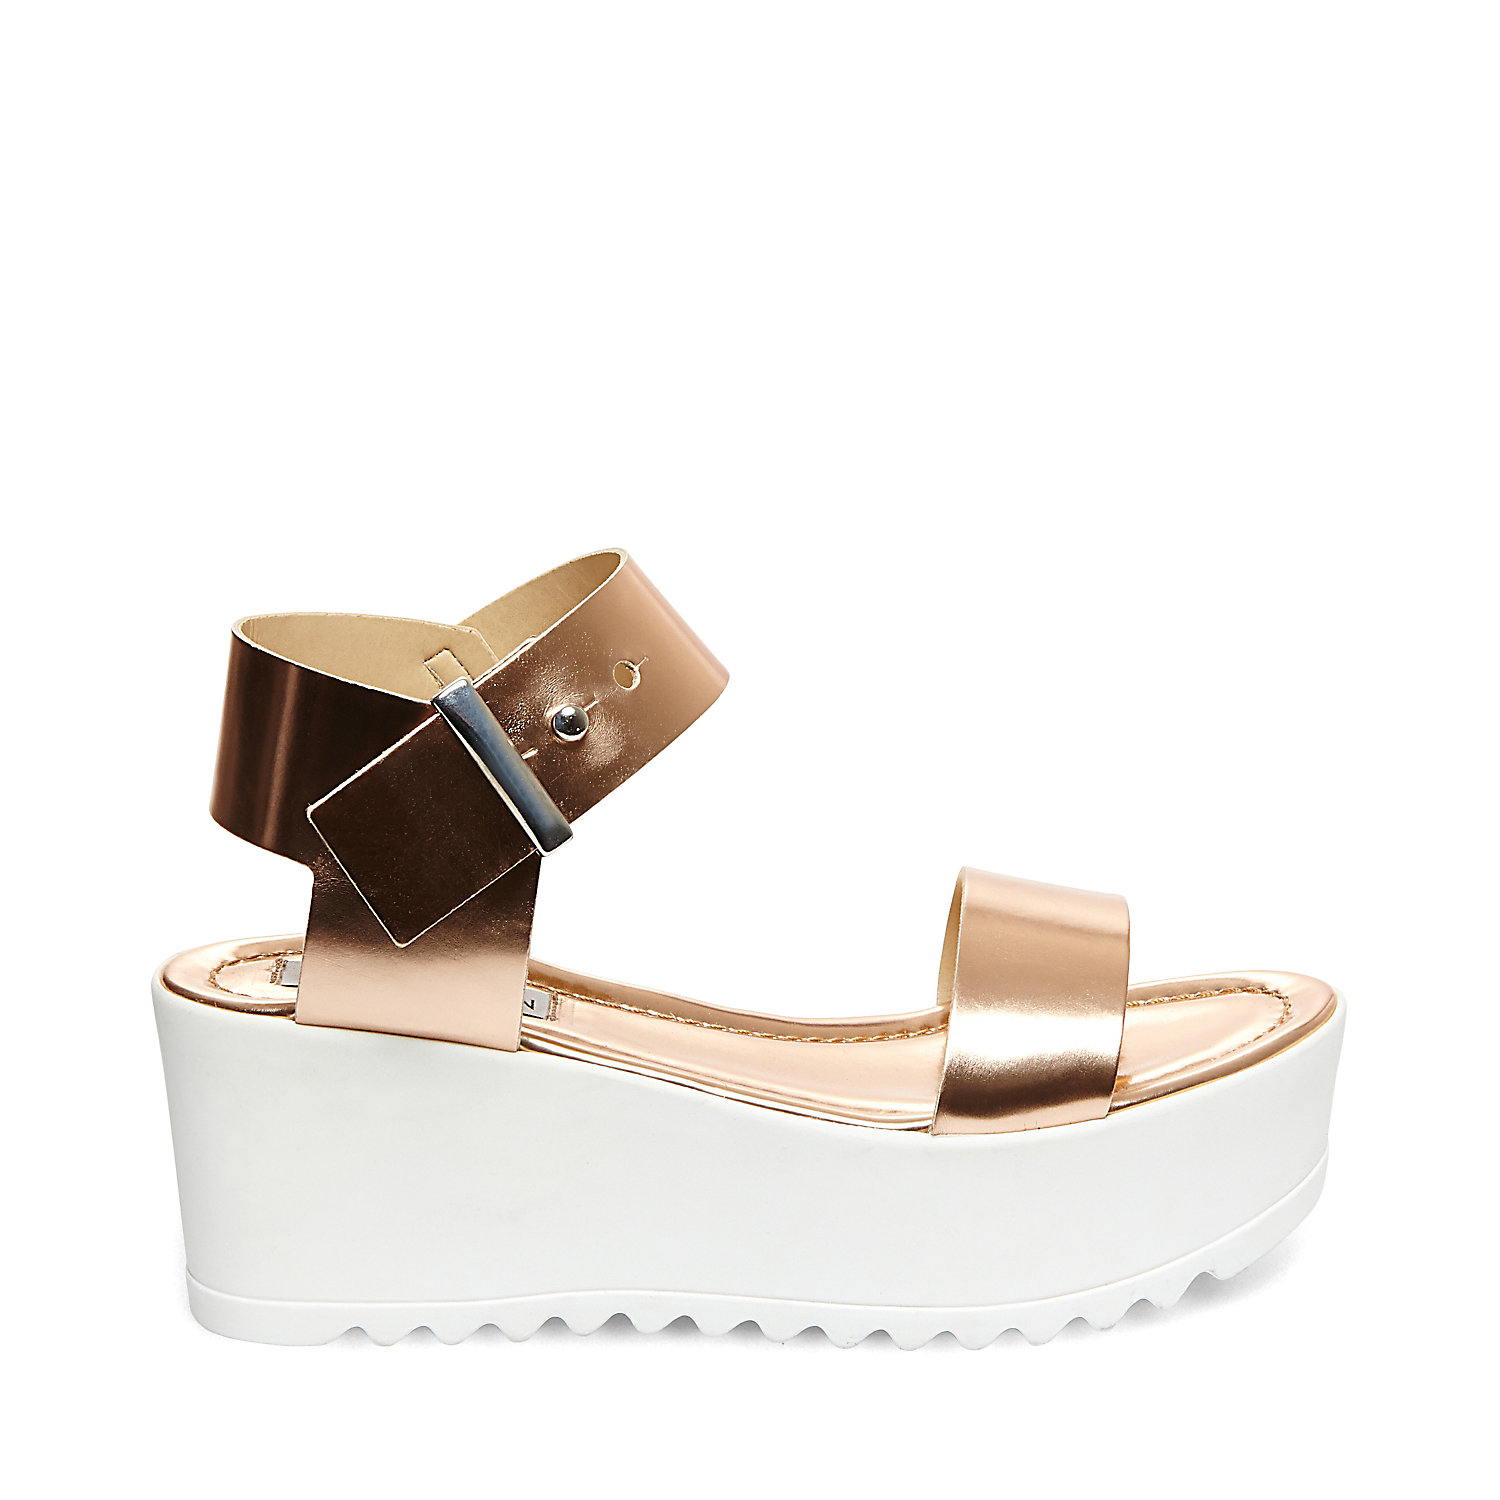 6b3639d7e29 Lyst - Steve Madden Surfside in Metallic